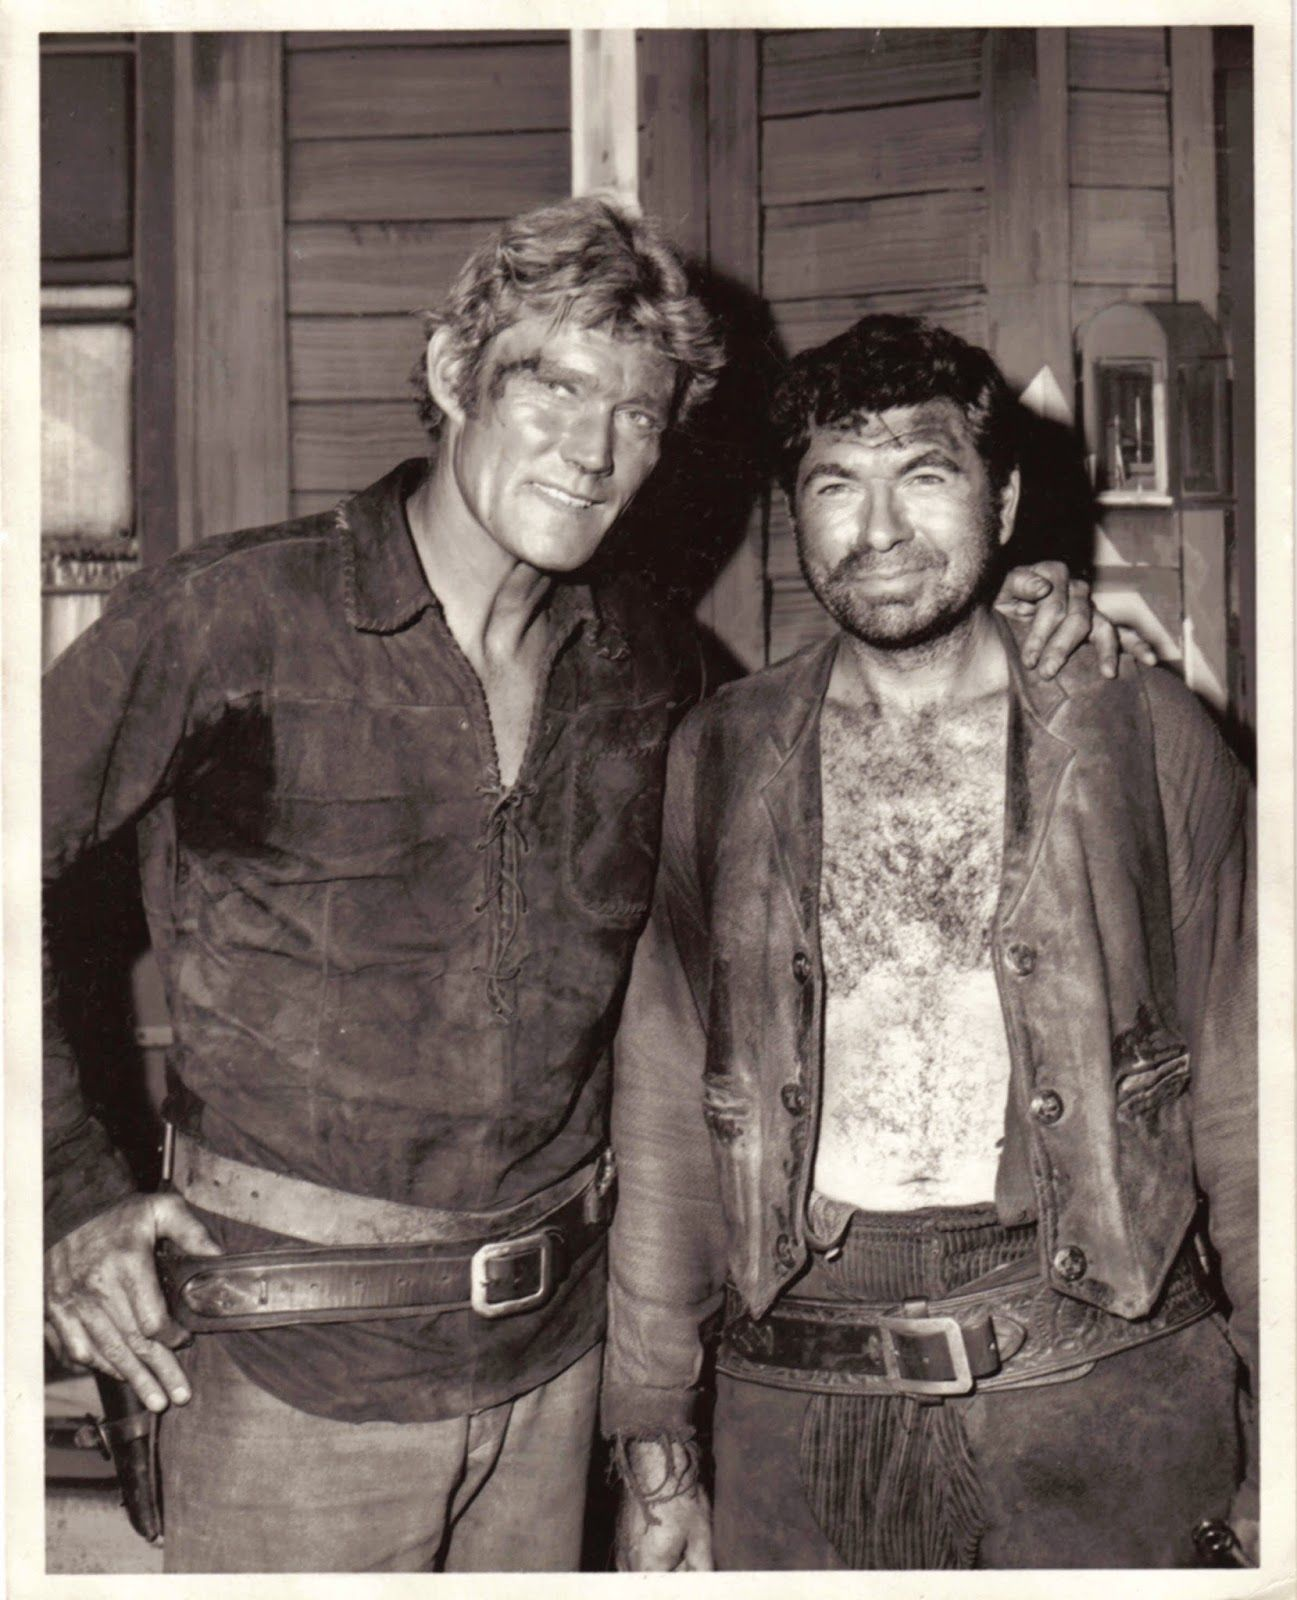 Claude Akins actor